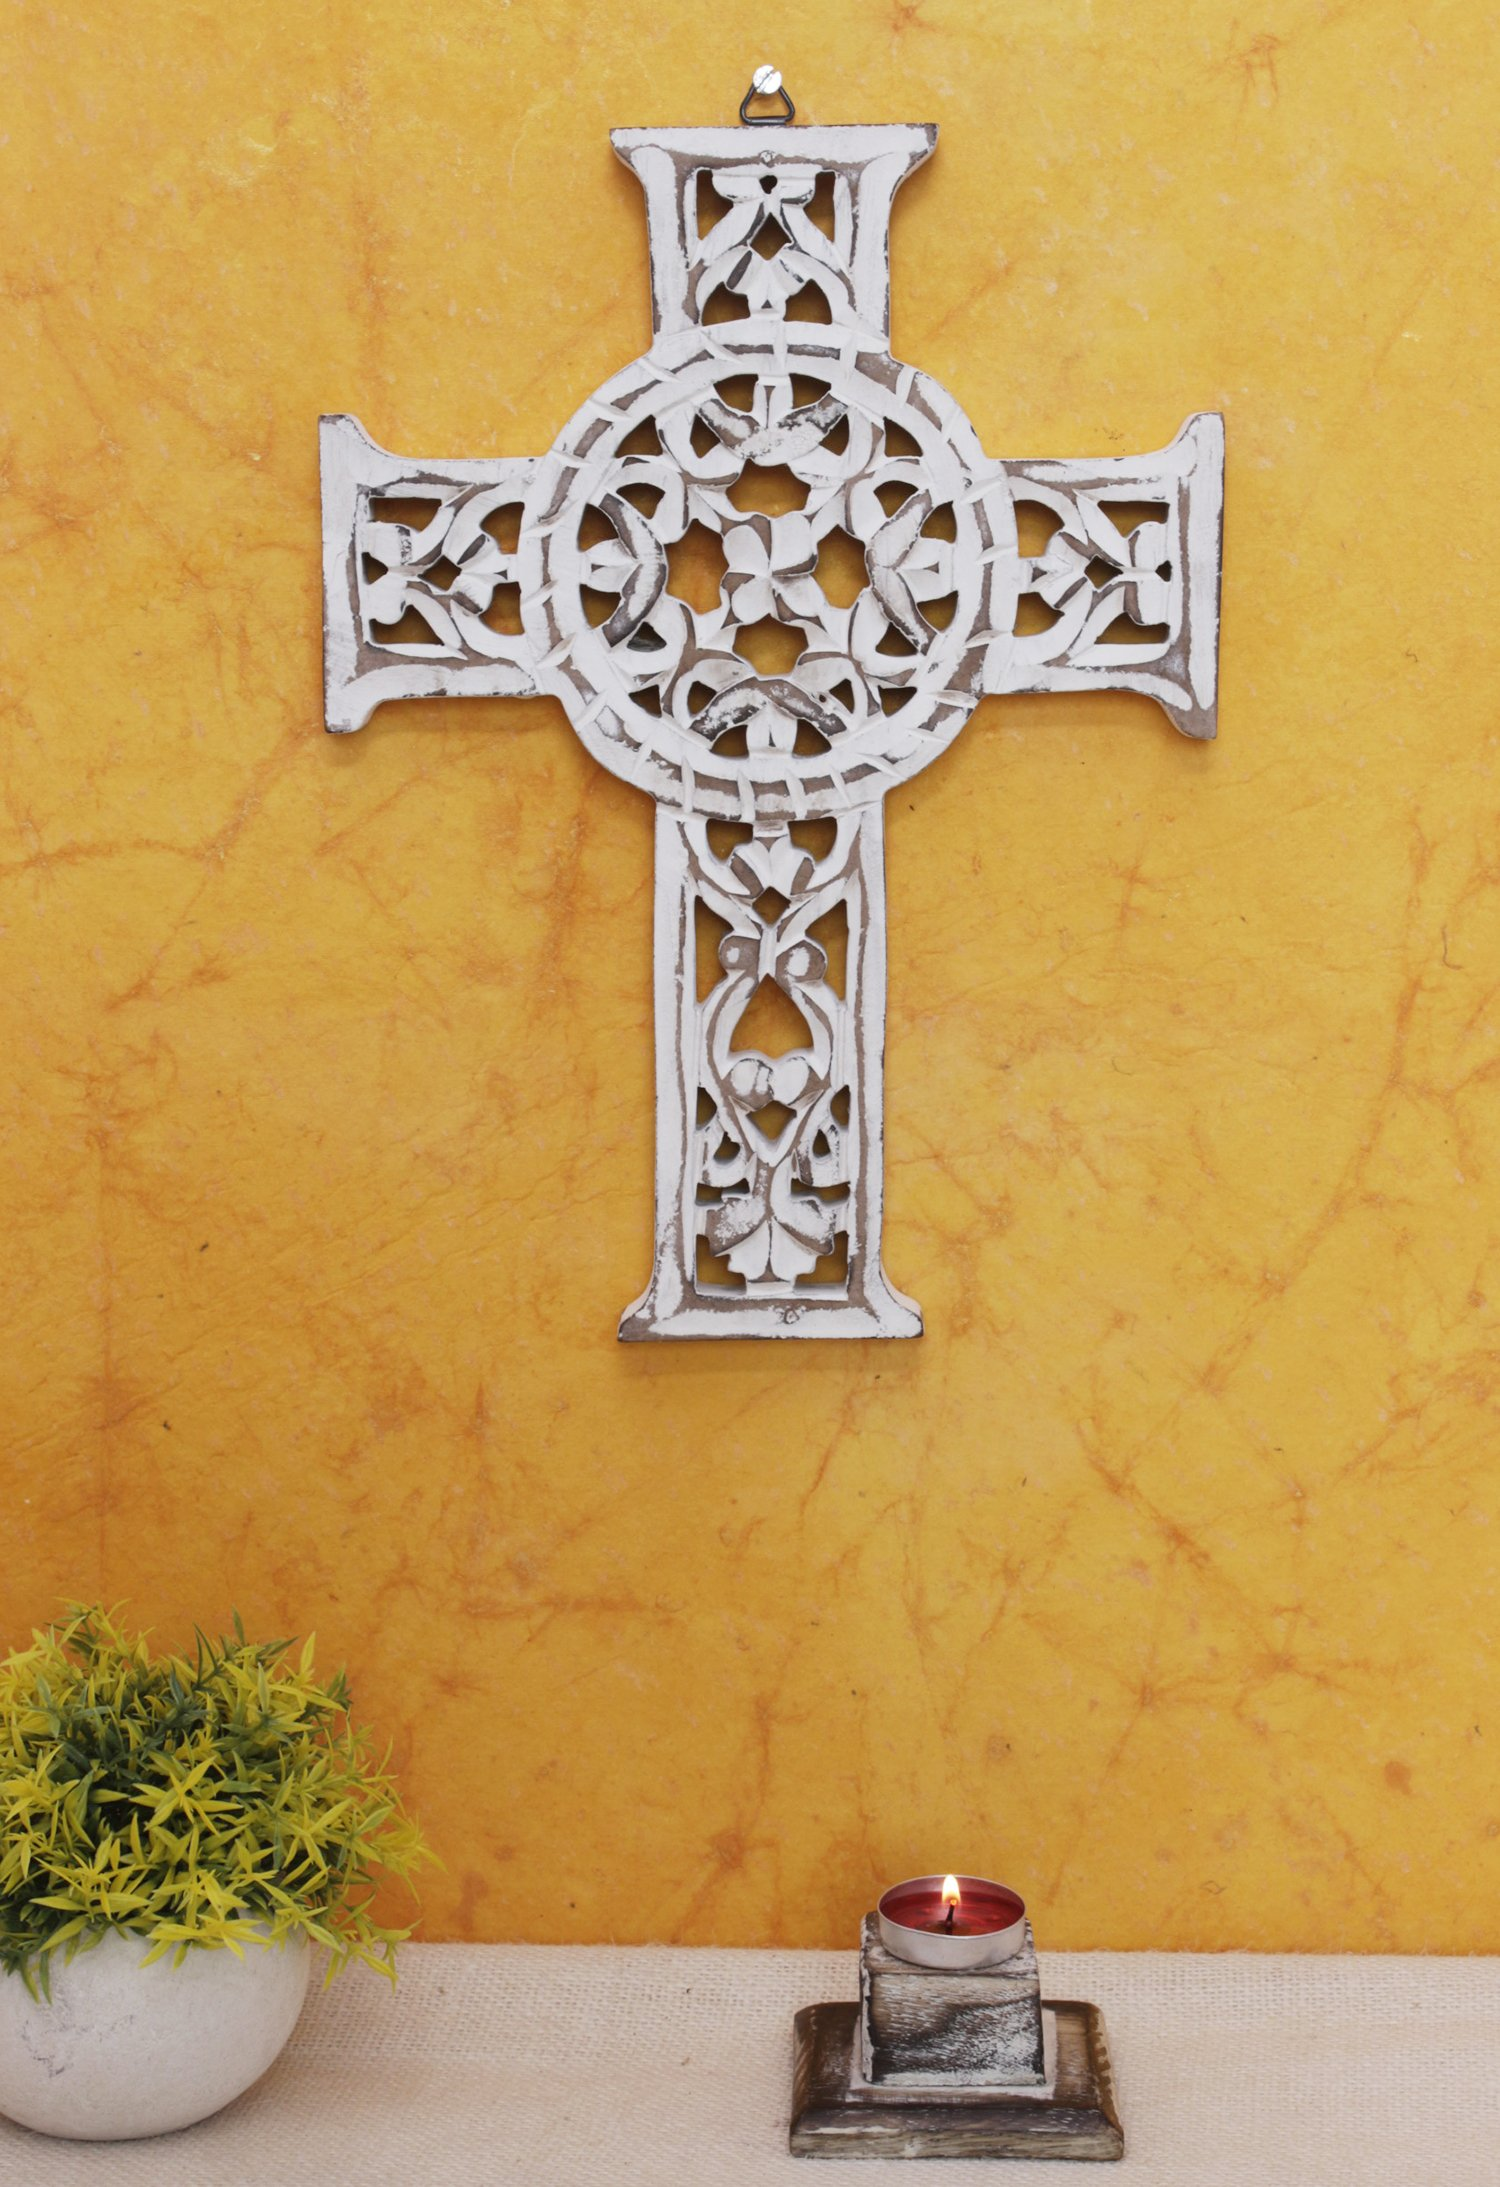 The StoreKing Wooden Wall Hanging French Cross 12'' with Celtic Hand Carvings Religious Cross Home Living Room Decor (Design4)